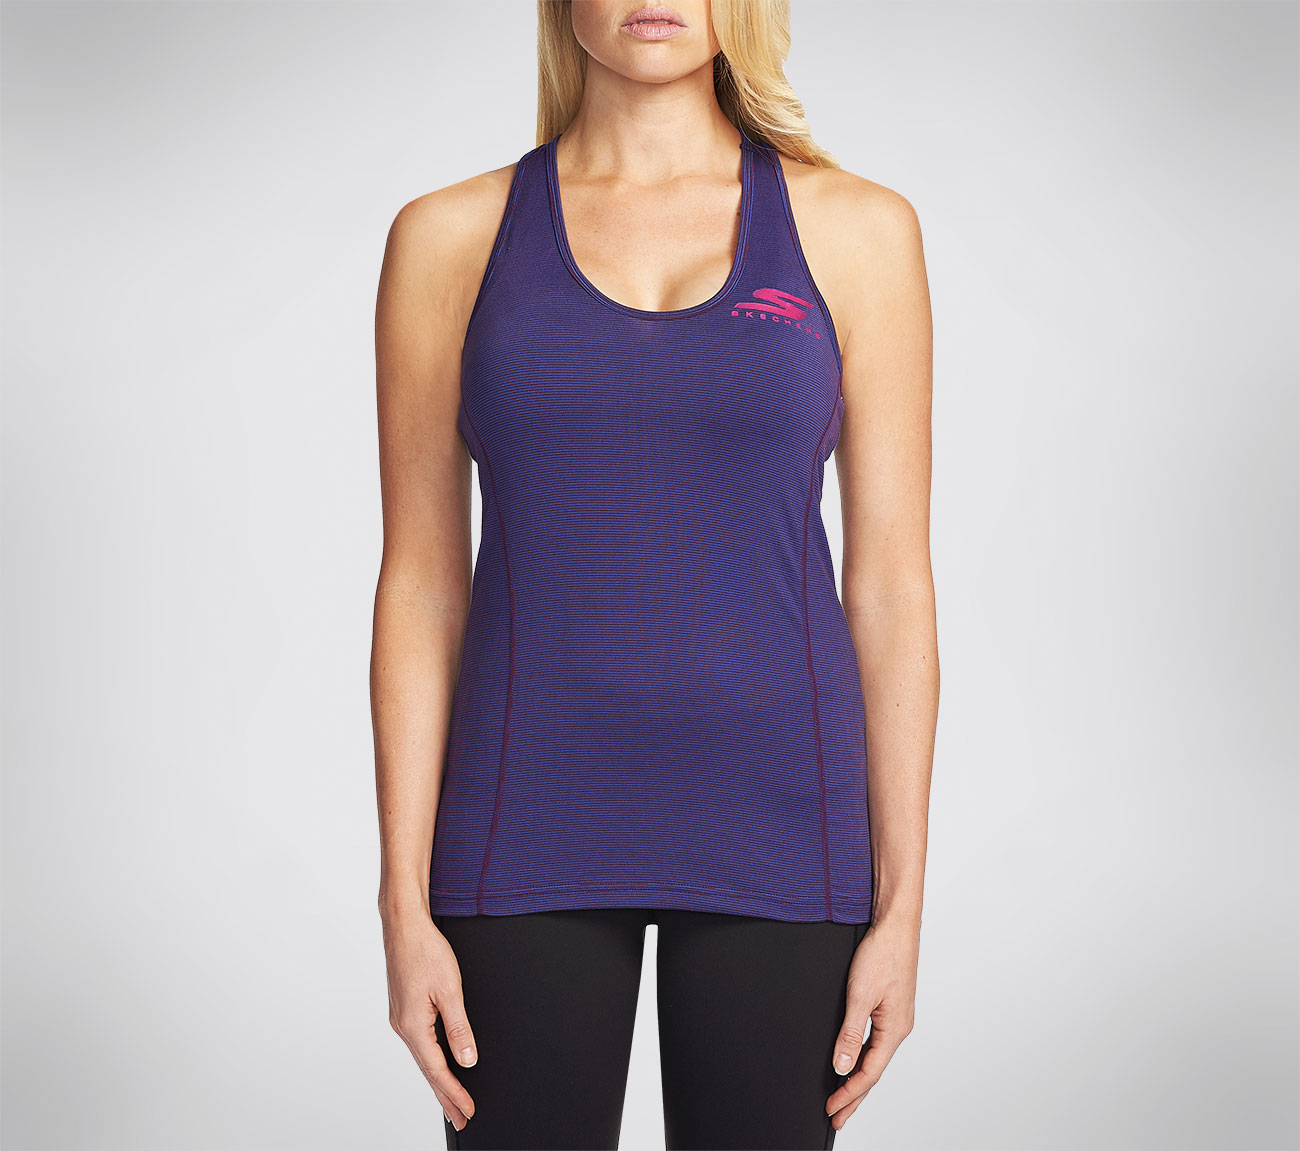 So whether you need tank tops to work out in or to layer under your work wear, take advantage of the discount Alo, Bella, and Anvil products at Clothing Shop Online: the .